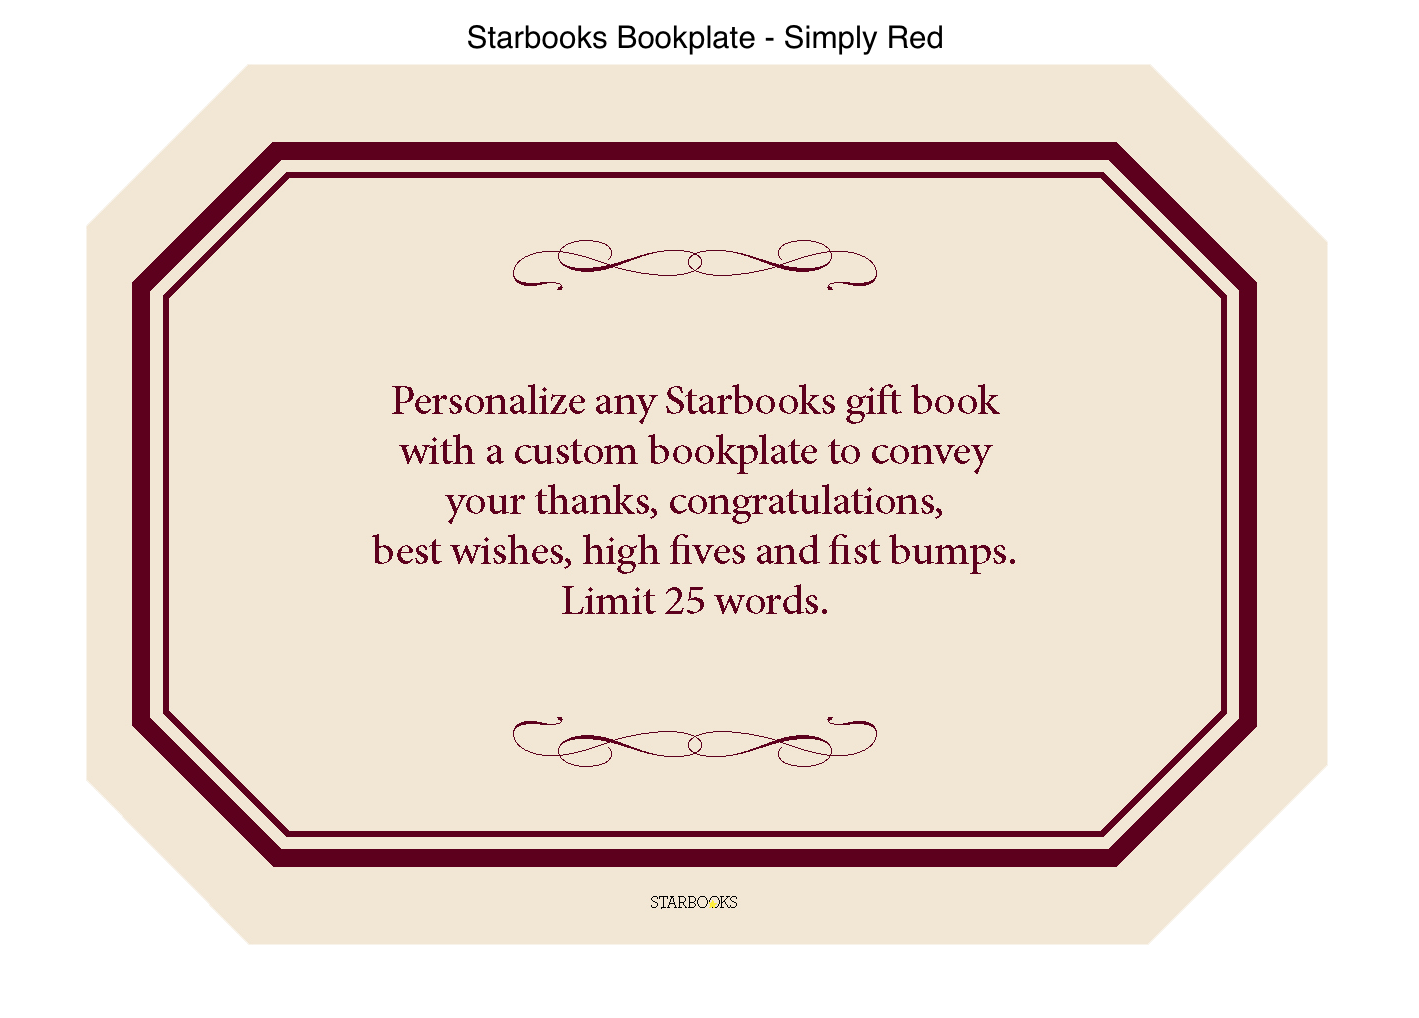 Personalized book plate, add your own message, customize your gift book purchase